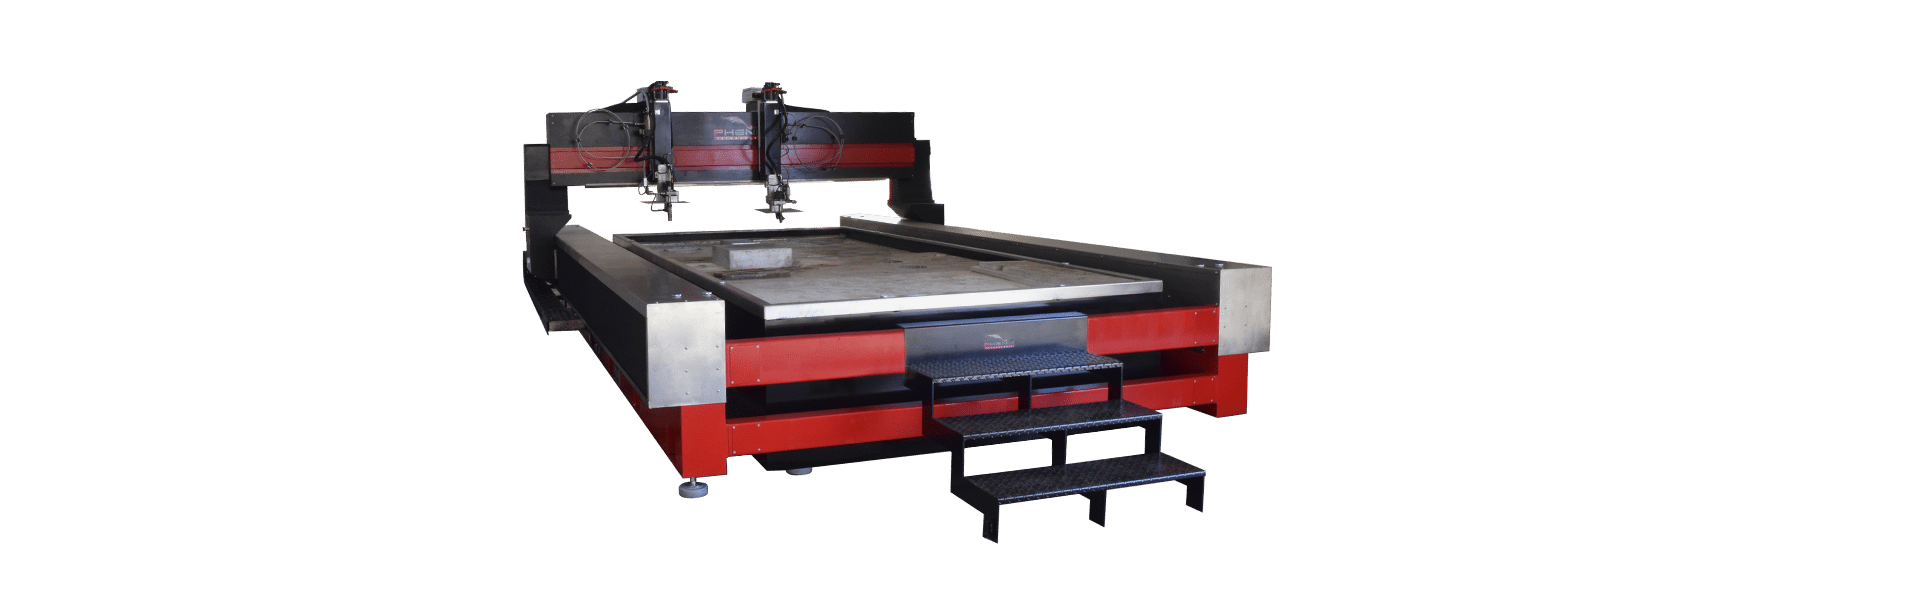 machine decoupe projet jet d eau - PRO Jet water cutting table